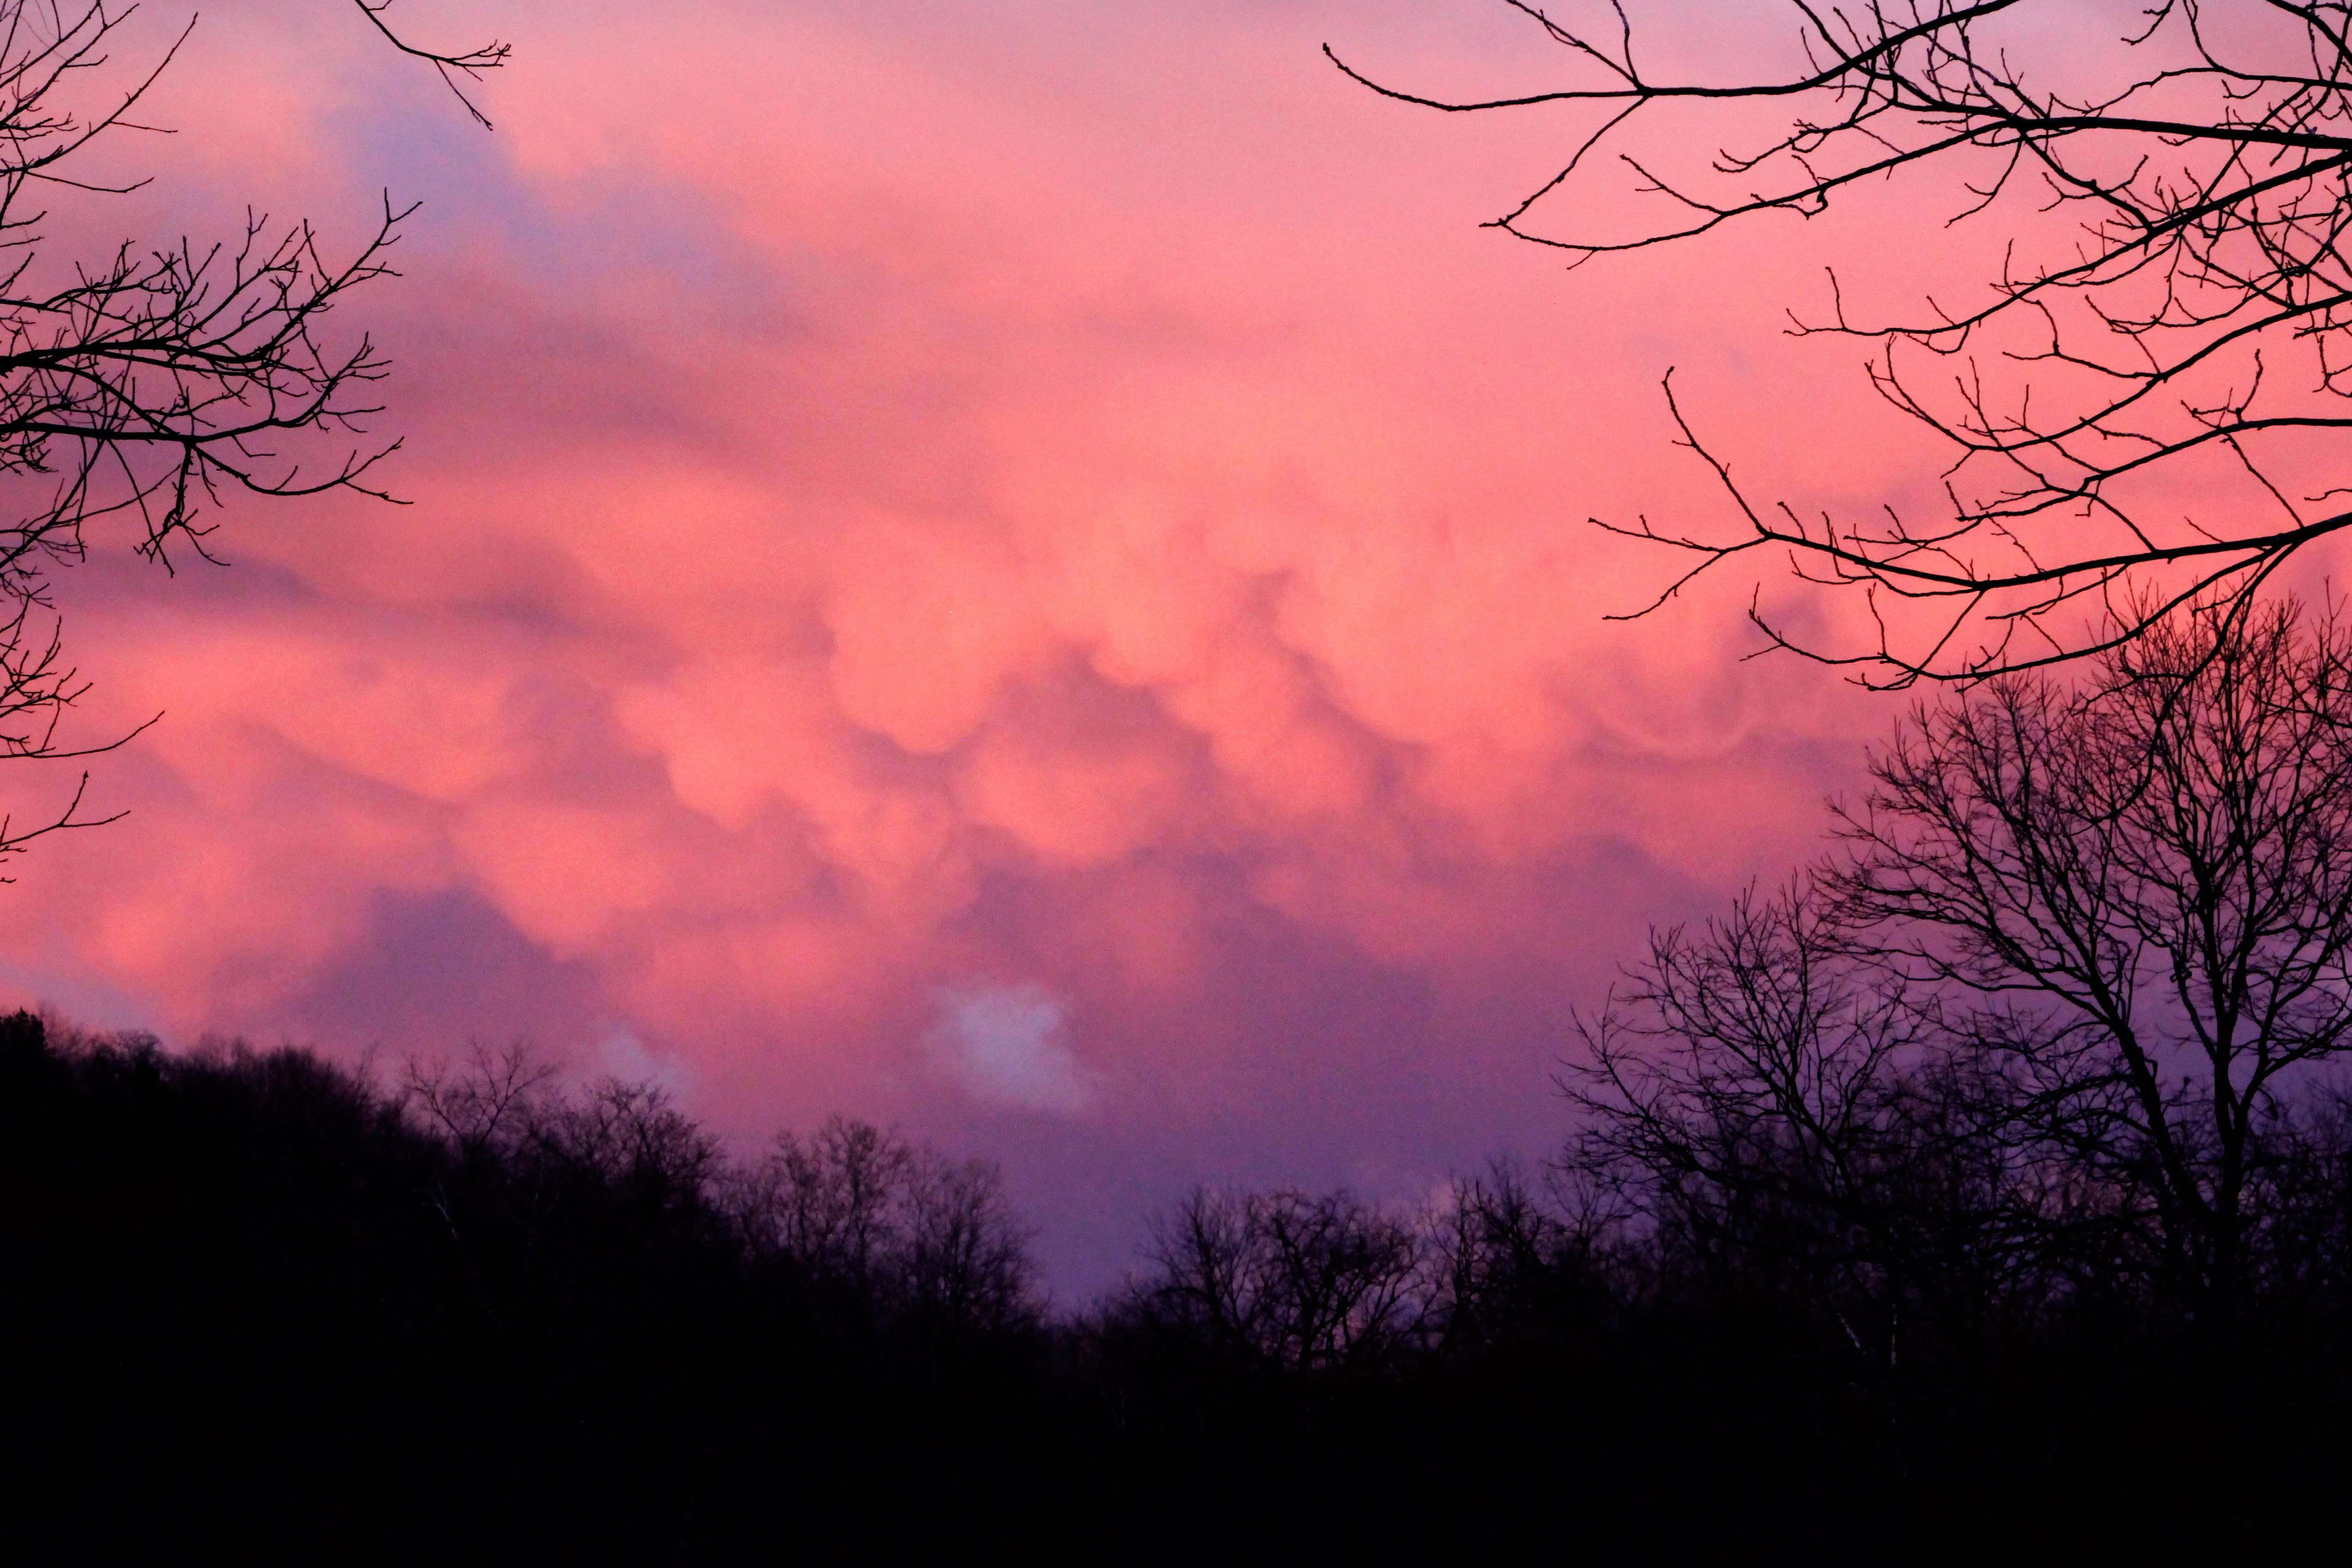 Cloud Formations at Sunset photo taken by Gail E Rowley Ozark Stream Photography